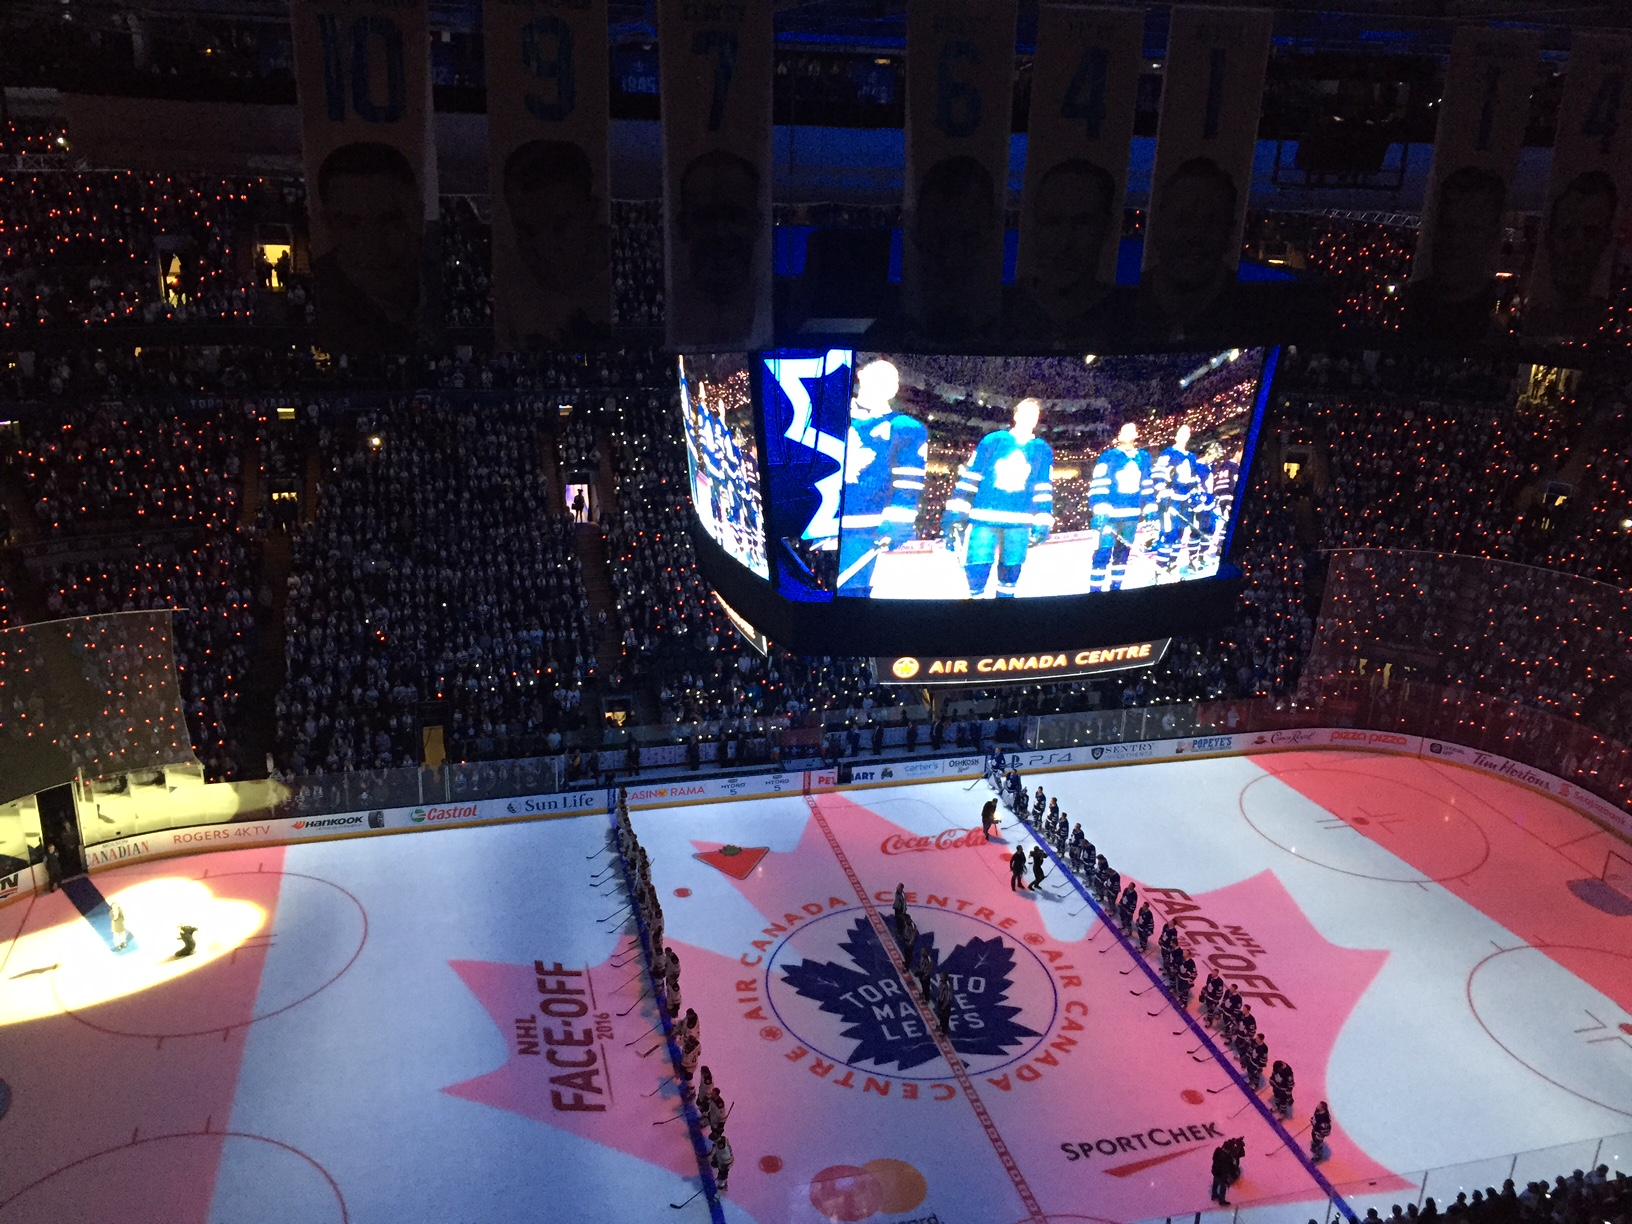 Leafs announce 2017-18 schedule